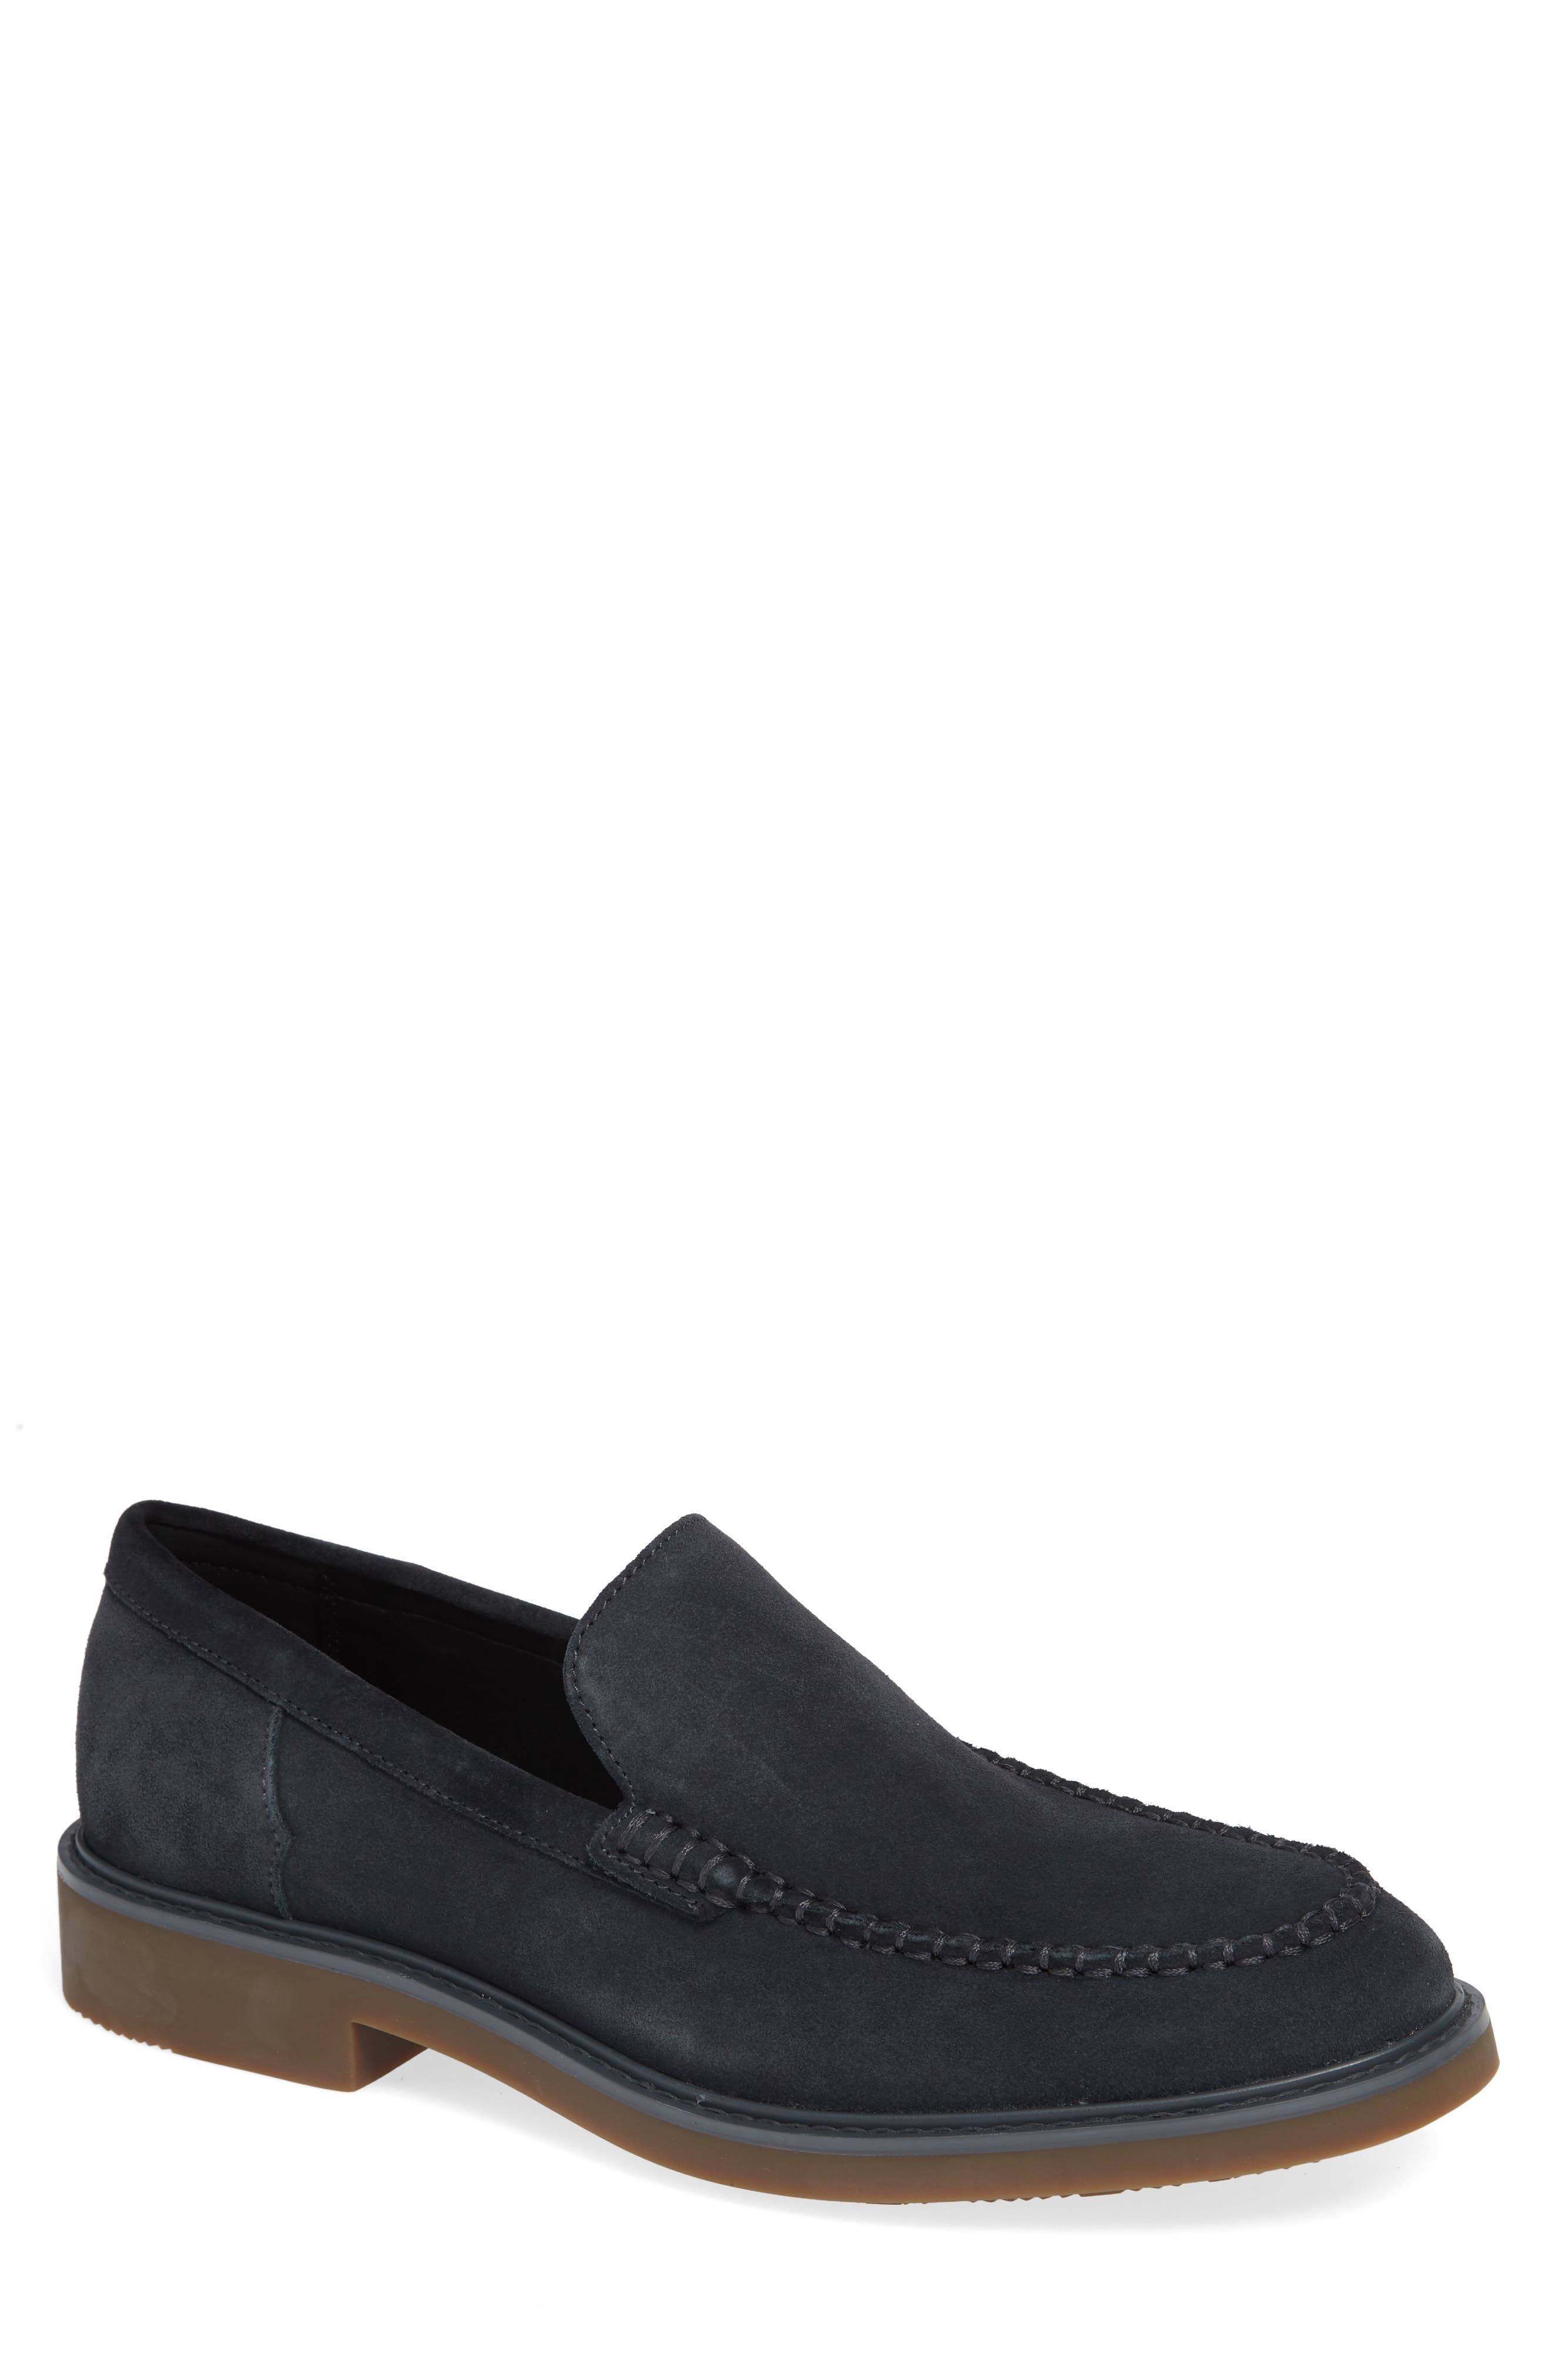 Vance Apron Toe Loafer,                         Main,                         color, STEEL GREYSTONE CALF SUEDE